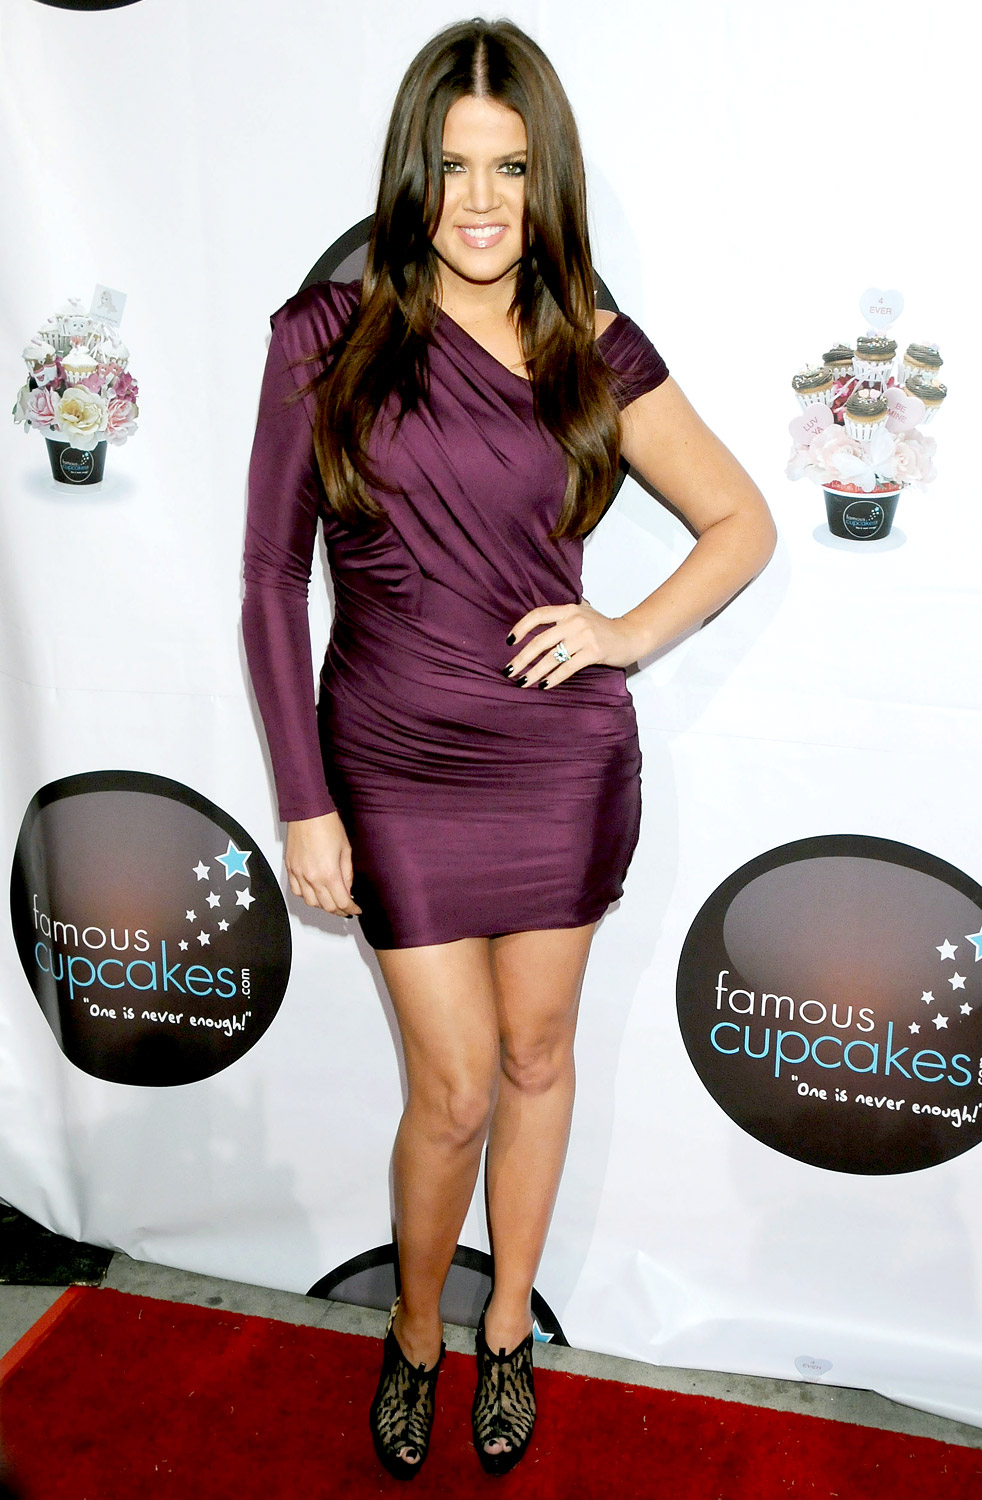 """Debuting a slimmer figure in a tight purple frock in 2009, Khloé revealed she did it by using the weight loss program QuickTrim (all three Kardashian sisters were spokeswomen for the product). """"QuickTrim is seriously amazing and I swear it works!!!"""" she wrote in a blogpost."""